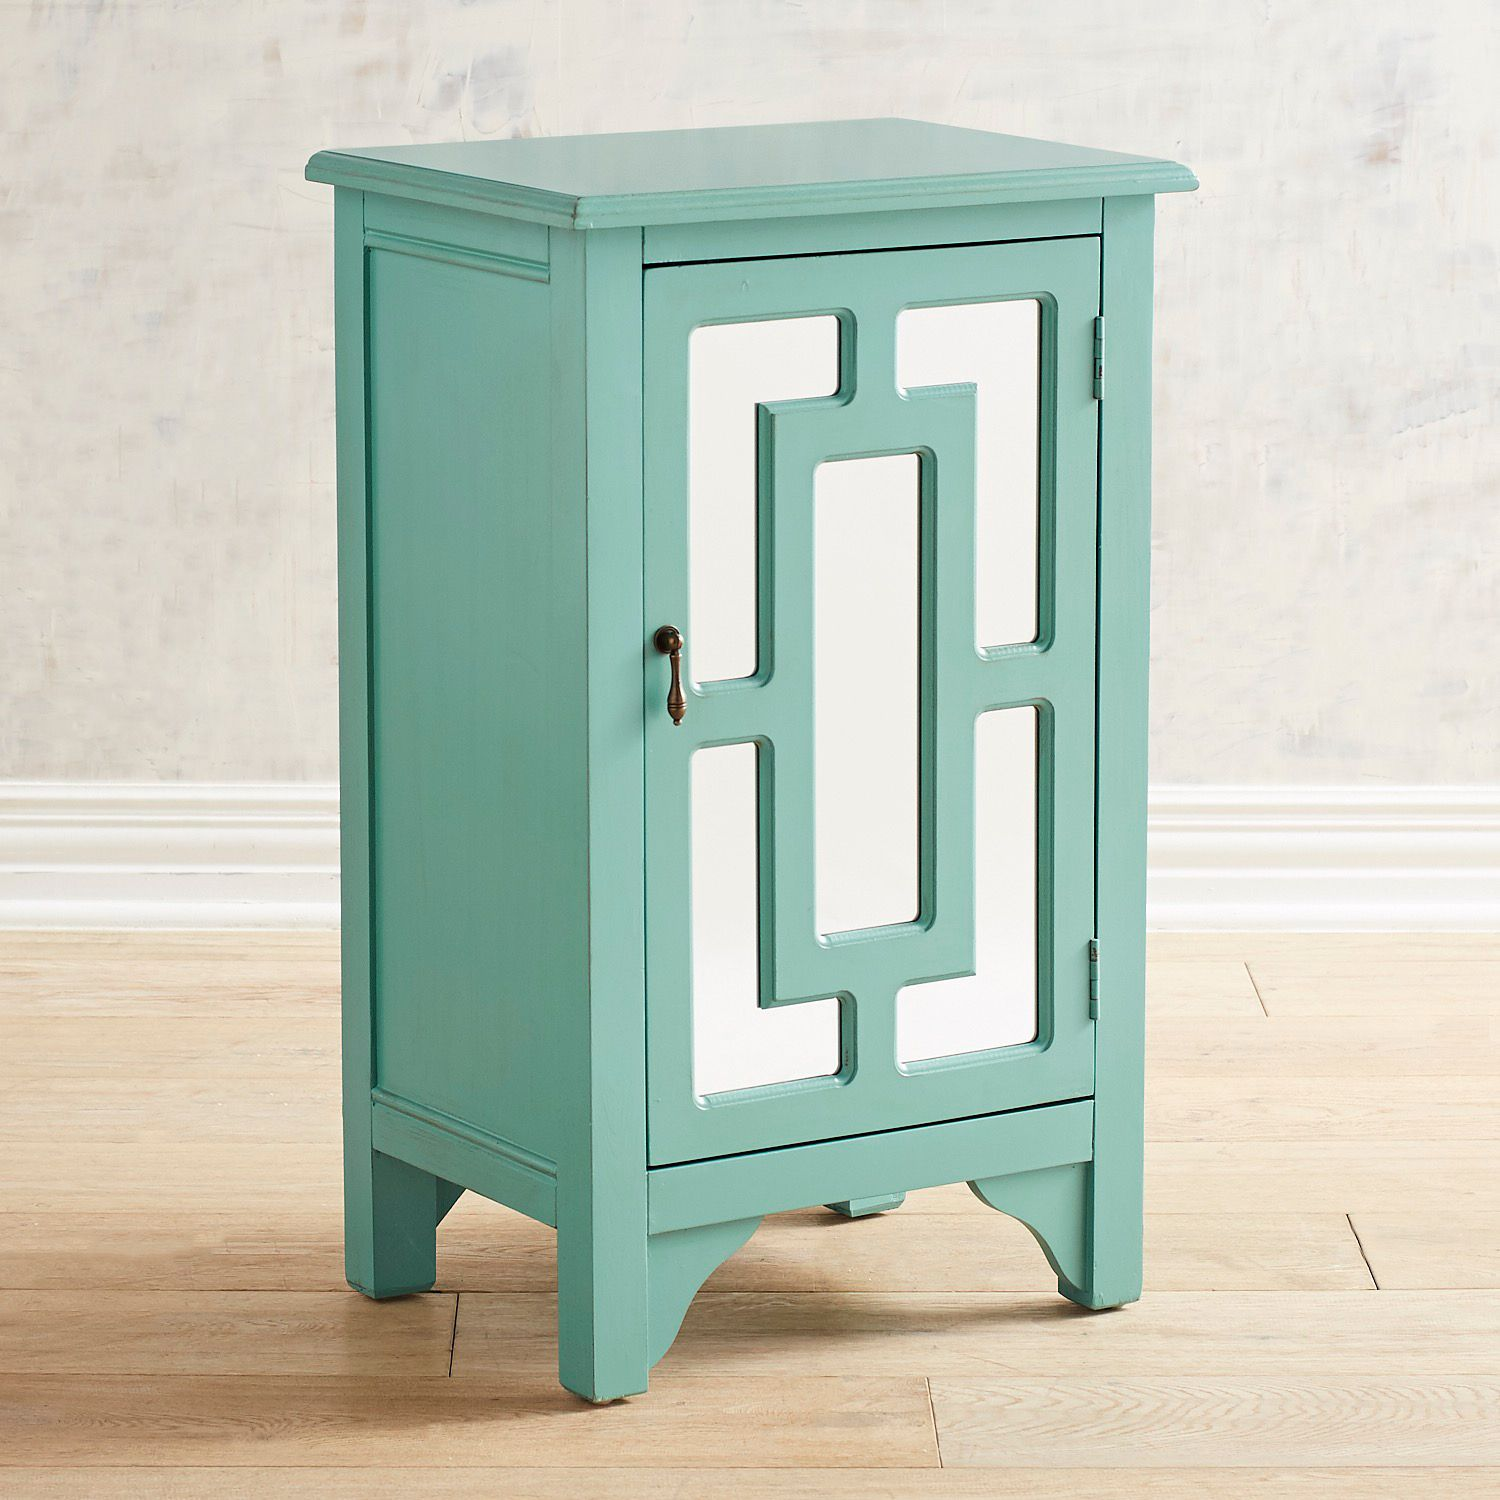 fretwork mirrored turquoise cabinet pier imports accent table cool retro furniture ikea slim modern glass coffee bags target futon mattress tall skinny side patchwork runner